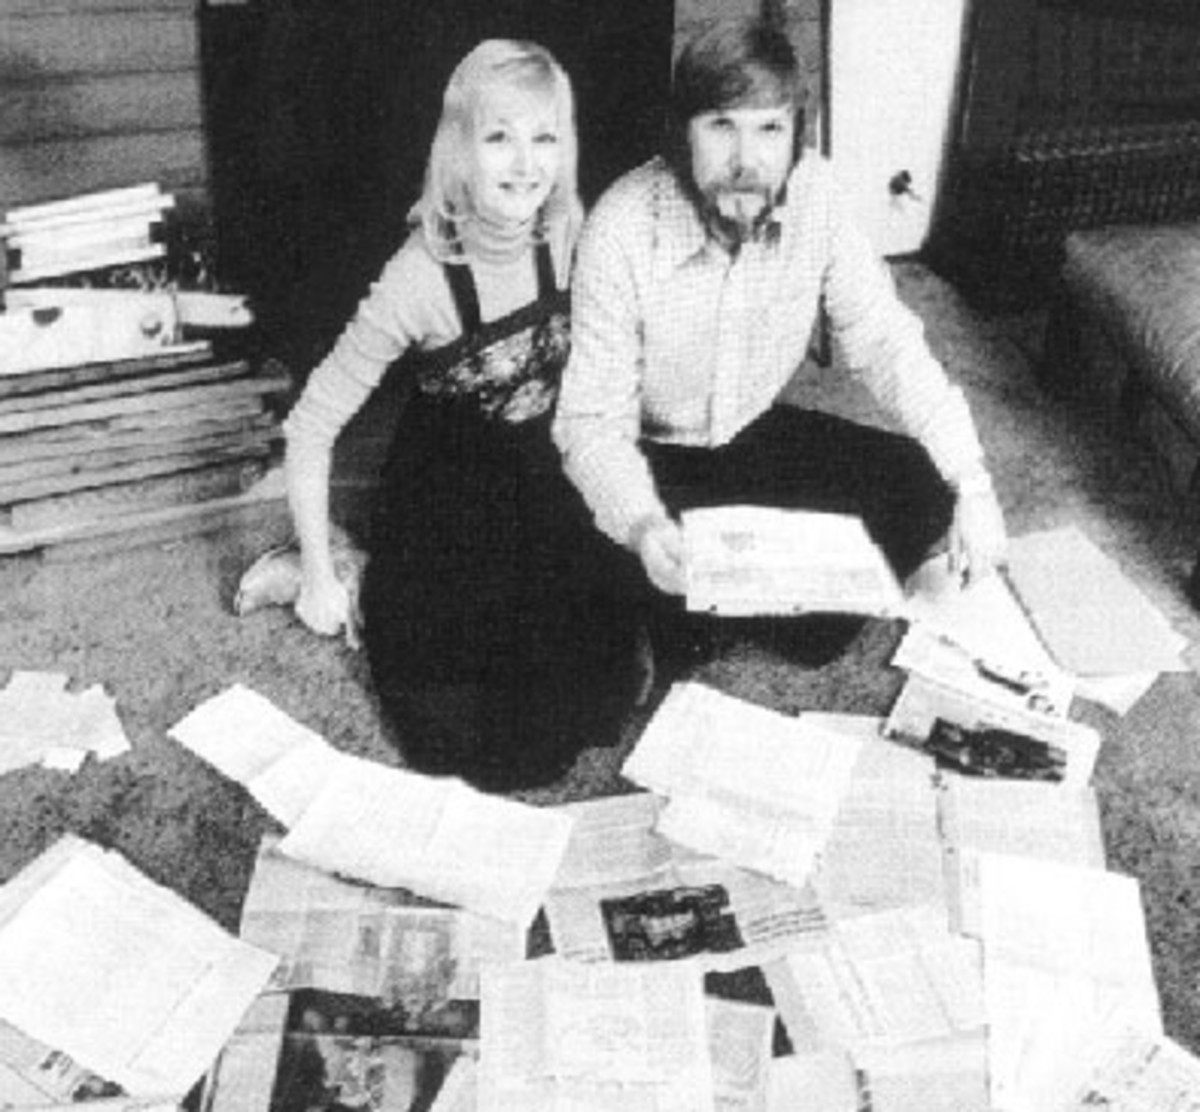 George and Kathy Lutz. Notice how much George resembles Ronnie Defeo Jr.,in the picture up above.